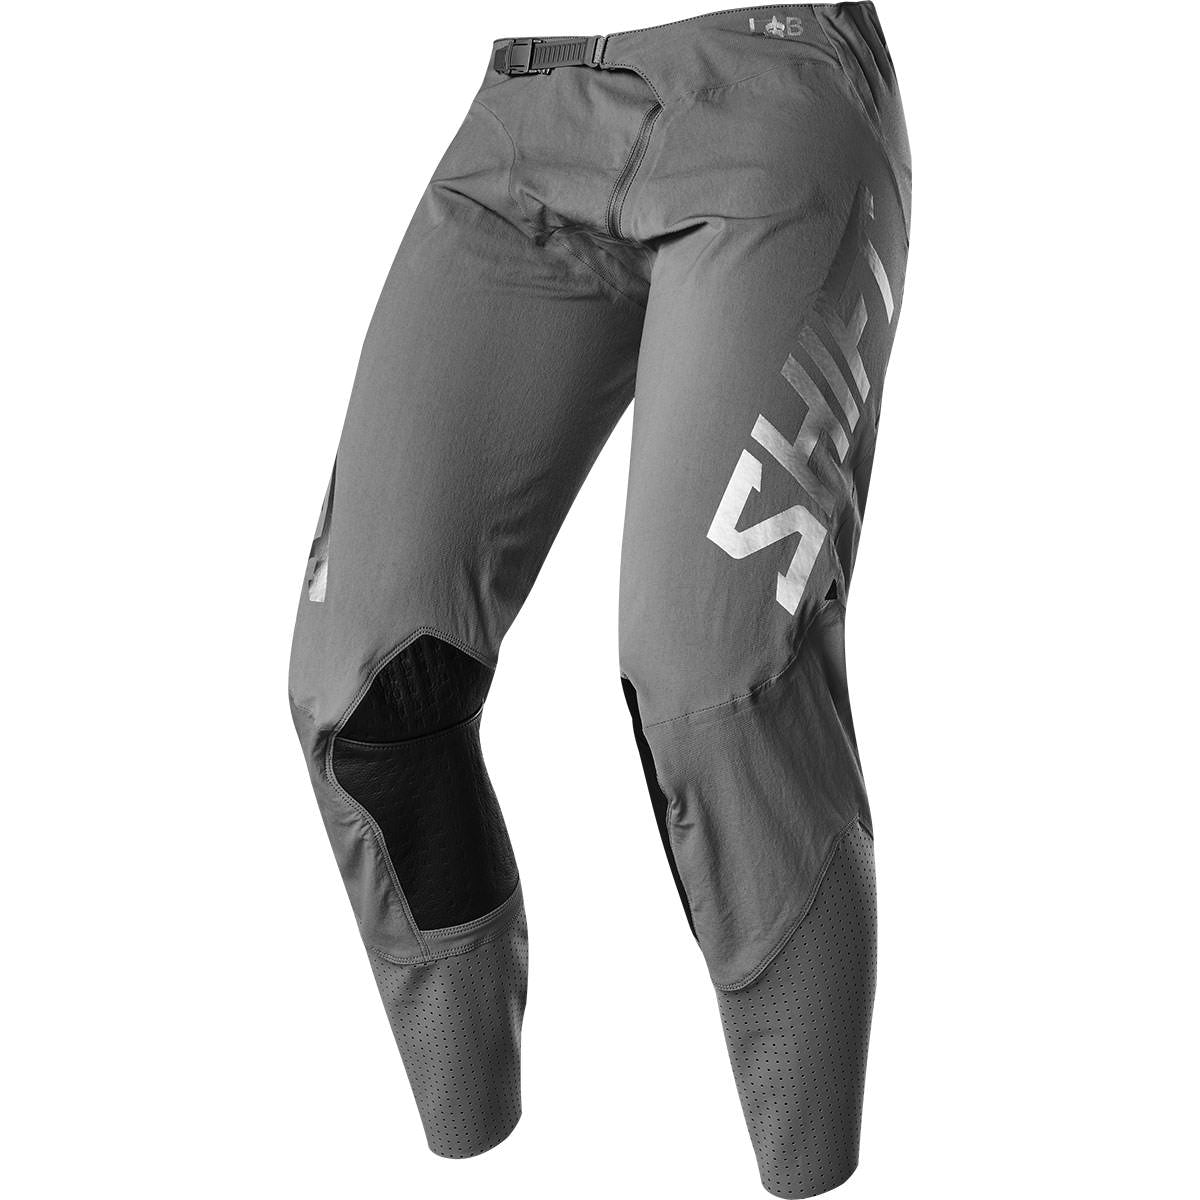 Shift Racing 3lue Label Haunted LE Men's Off-Road Pants-23490